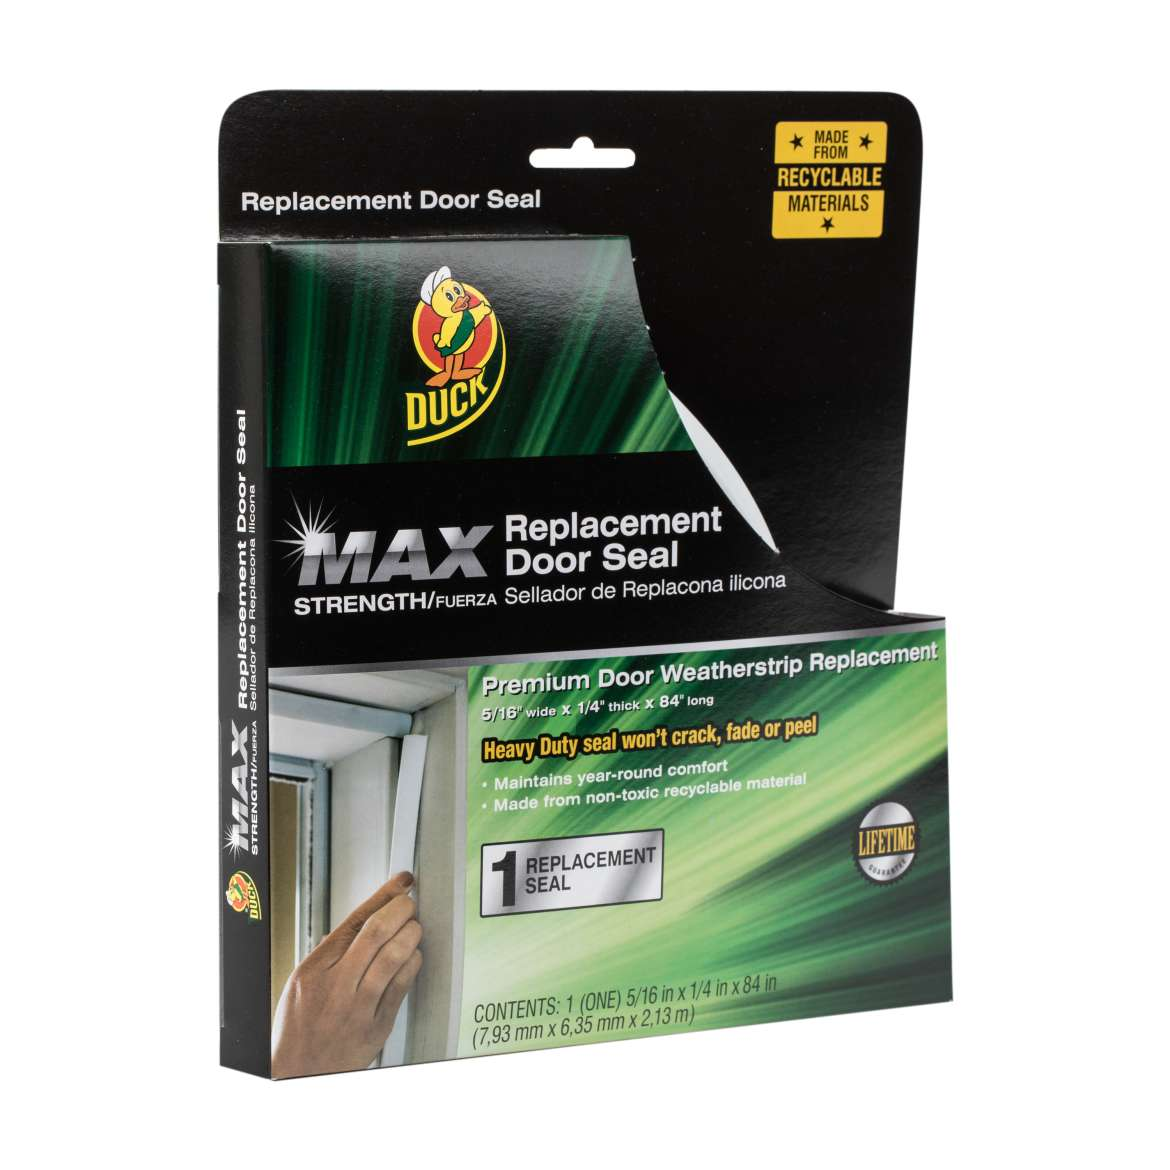 Max Strength Replacement Door Seal